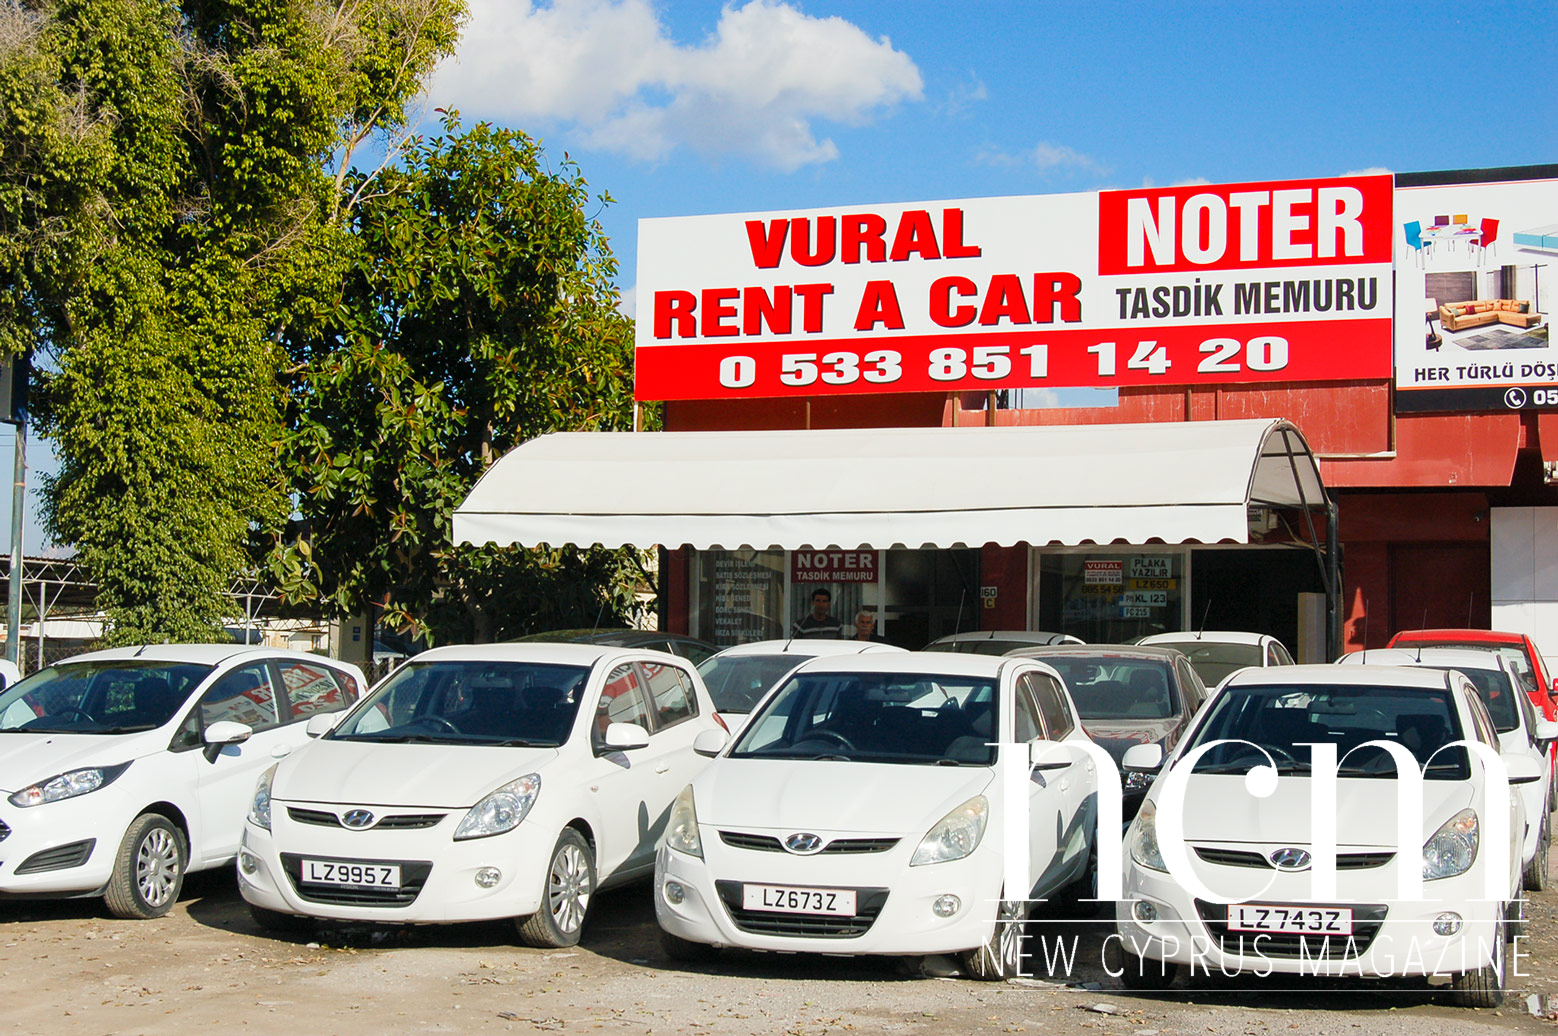 Vural Rent a Car are fully insured